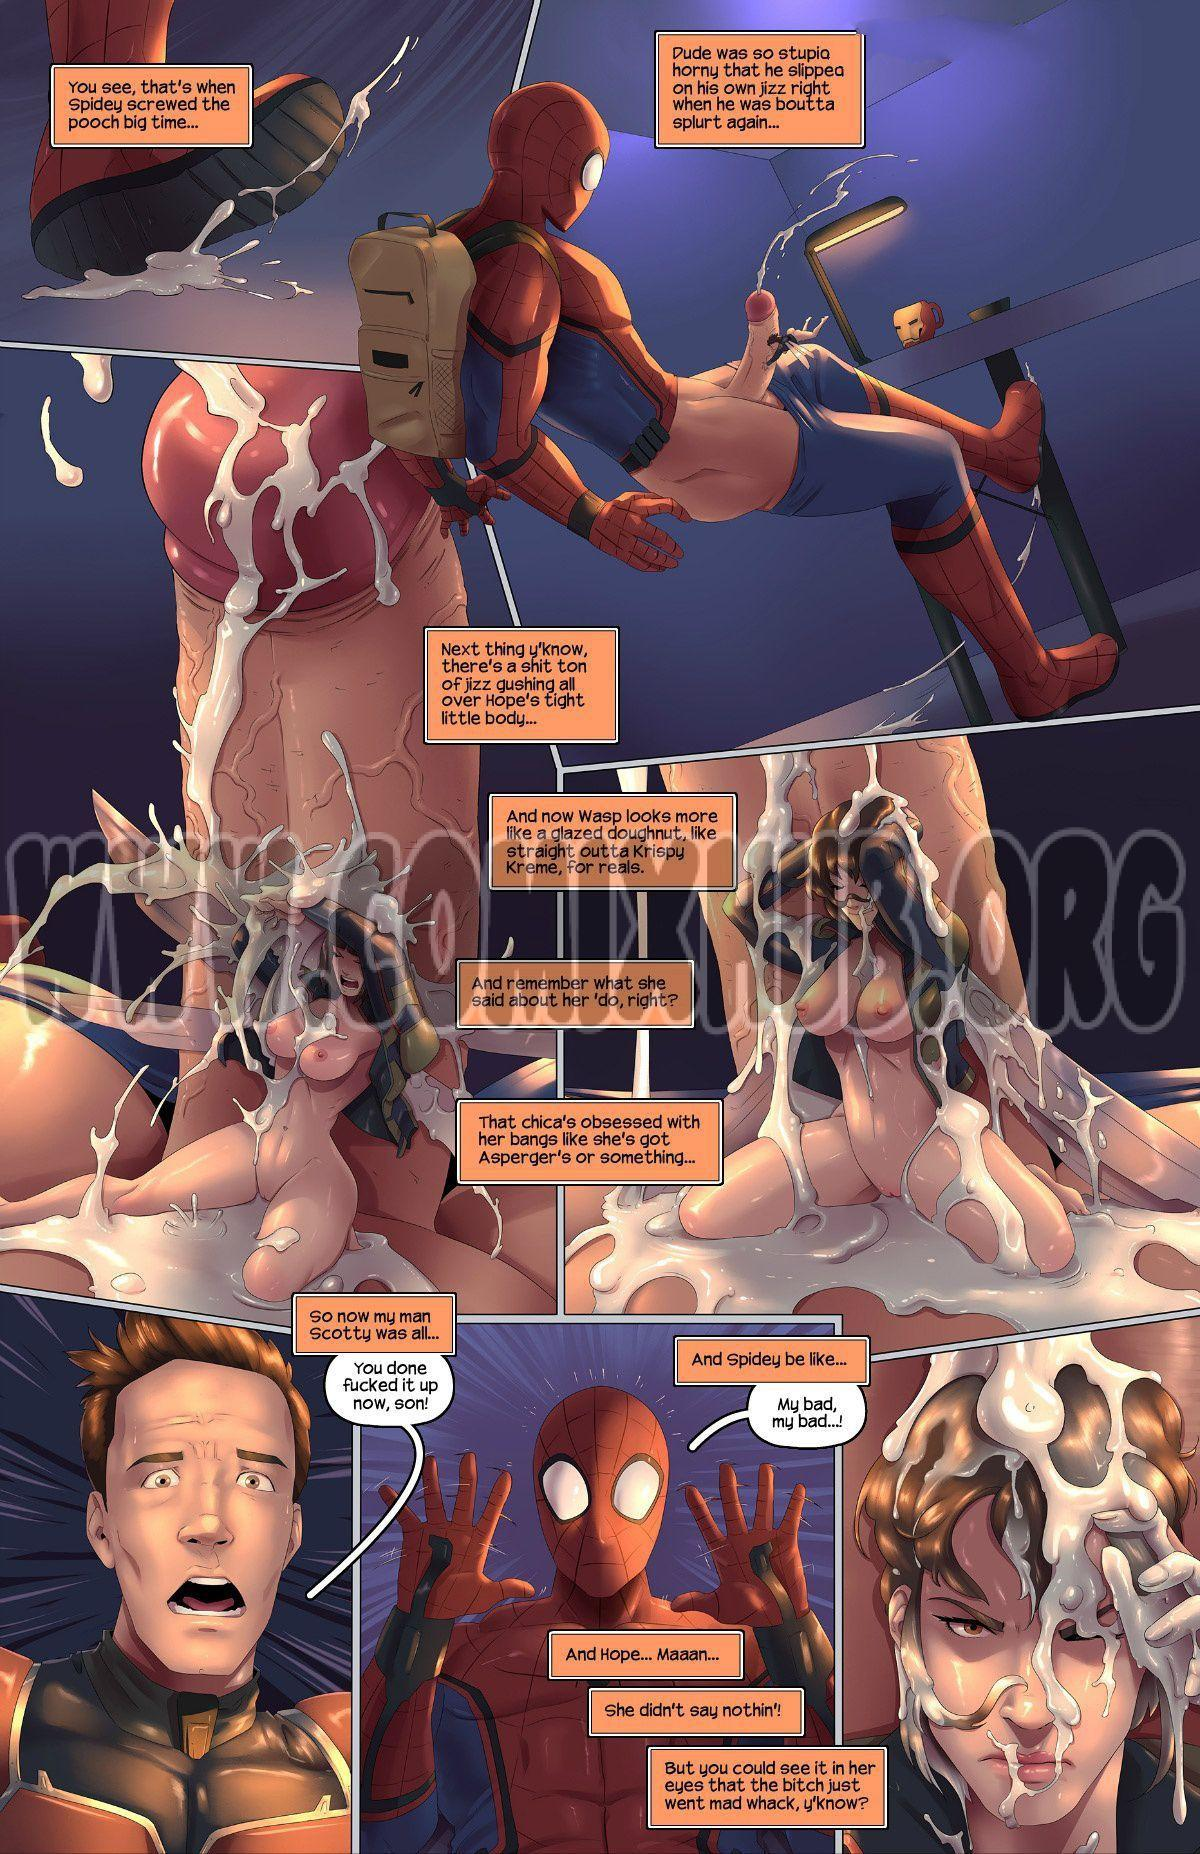 Ant-Man And The Wasp 2 porn comics Oral sex, Creampie, Cum Shots, cunnilingus, X-Ray